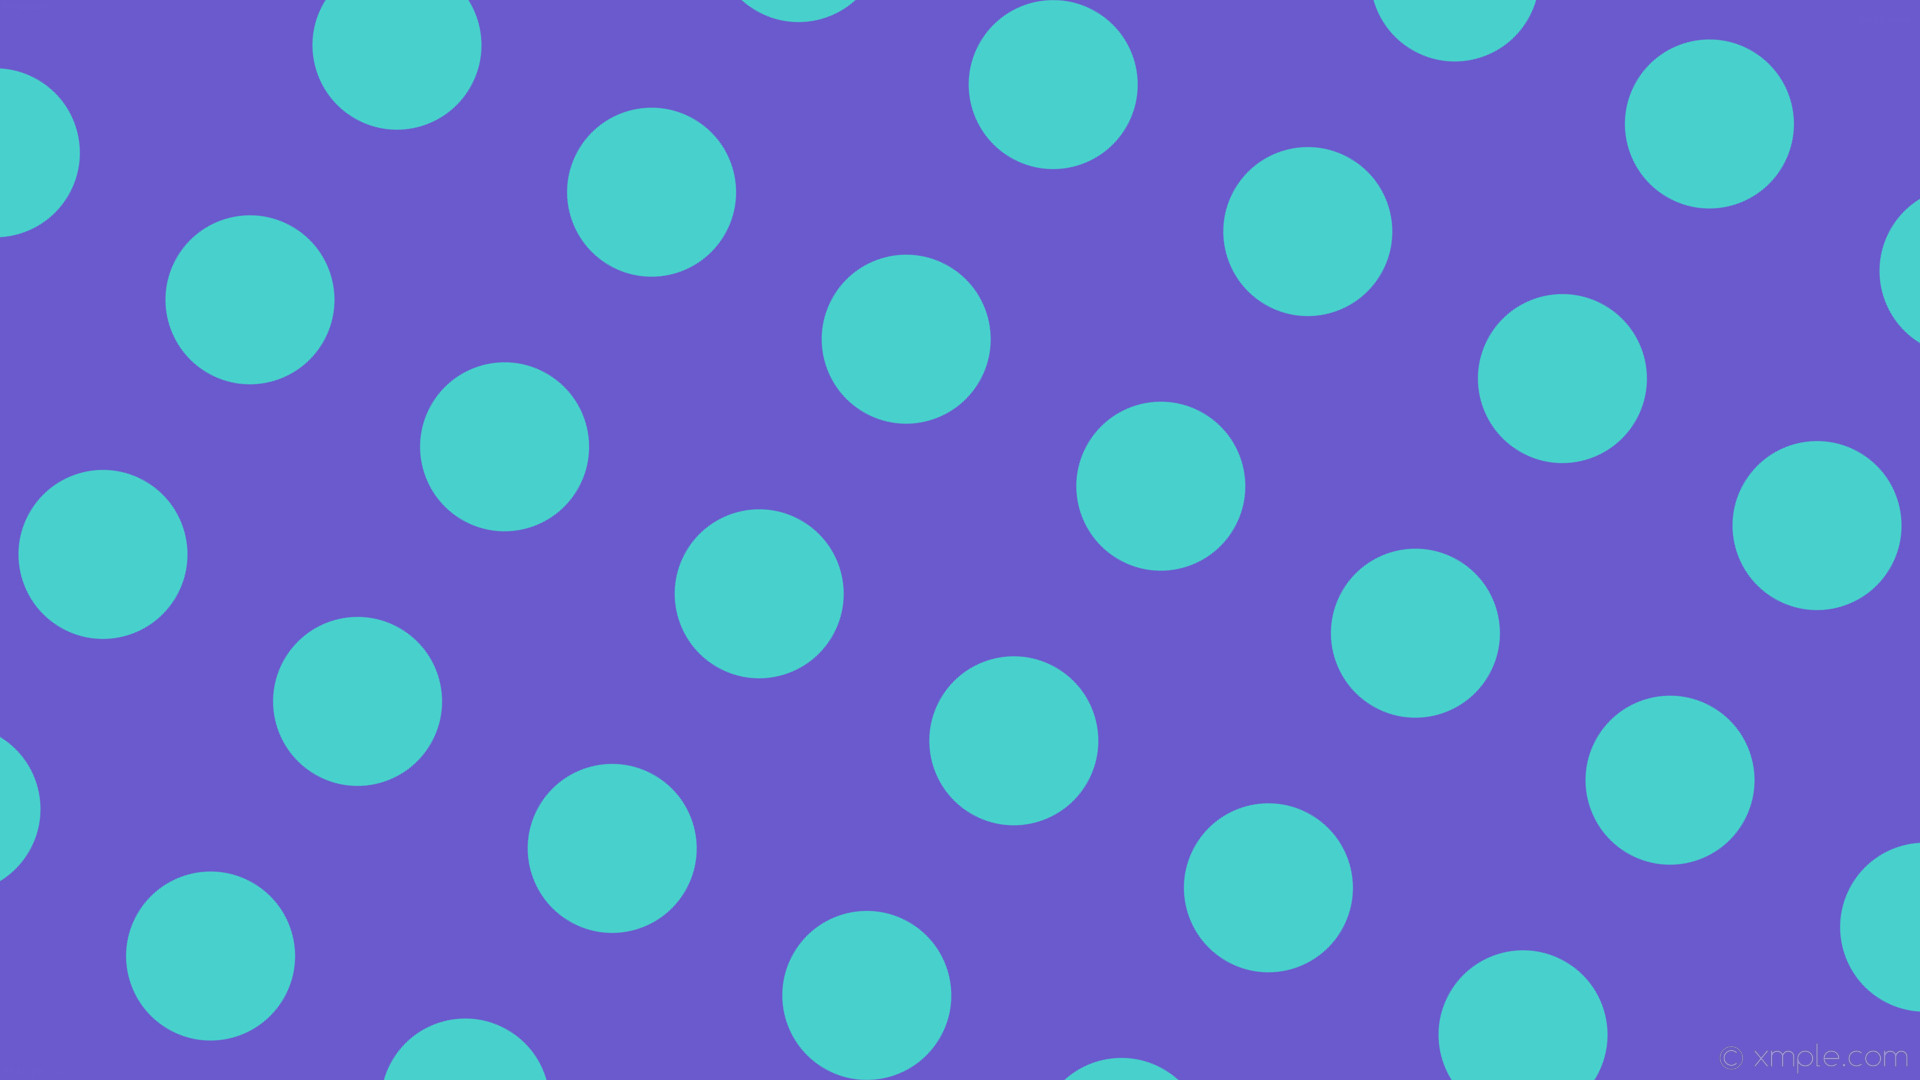 wallpaper blue polka dots purple spots slate blue medium turquoise #6a5acd  #48d1cc 330°